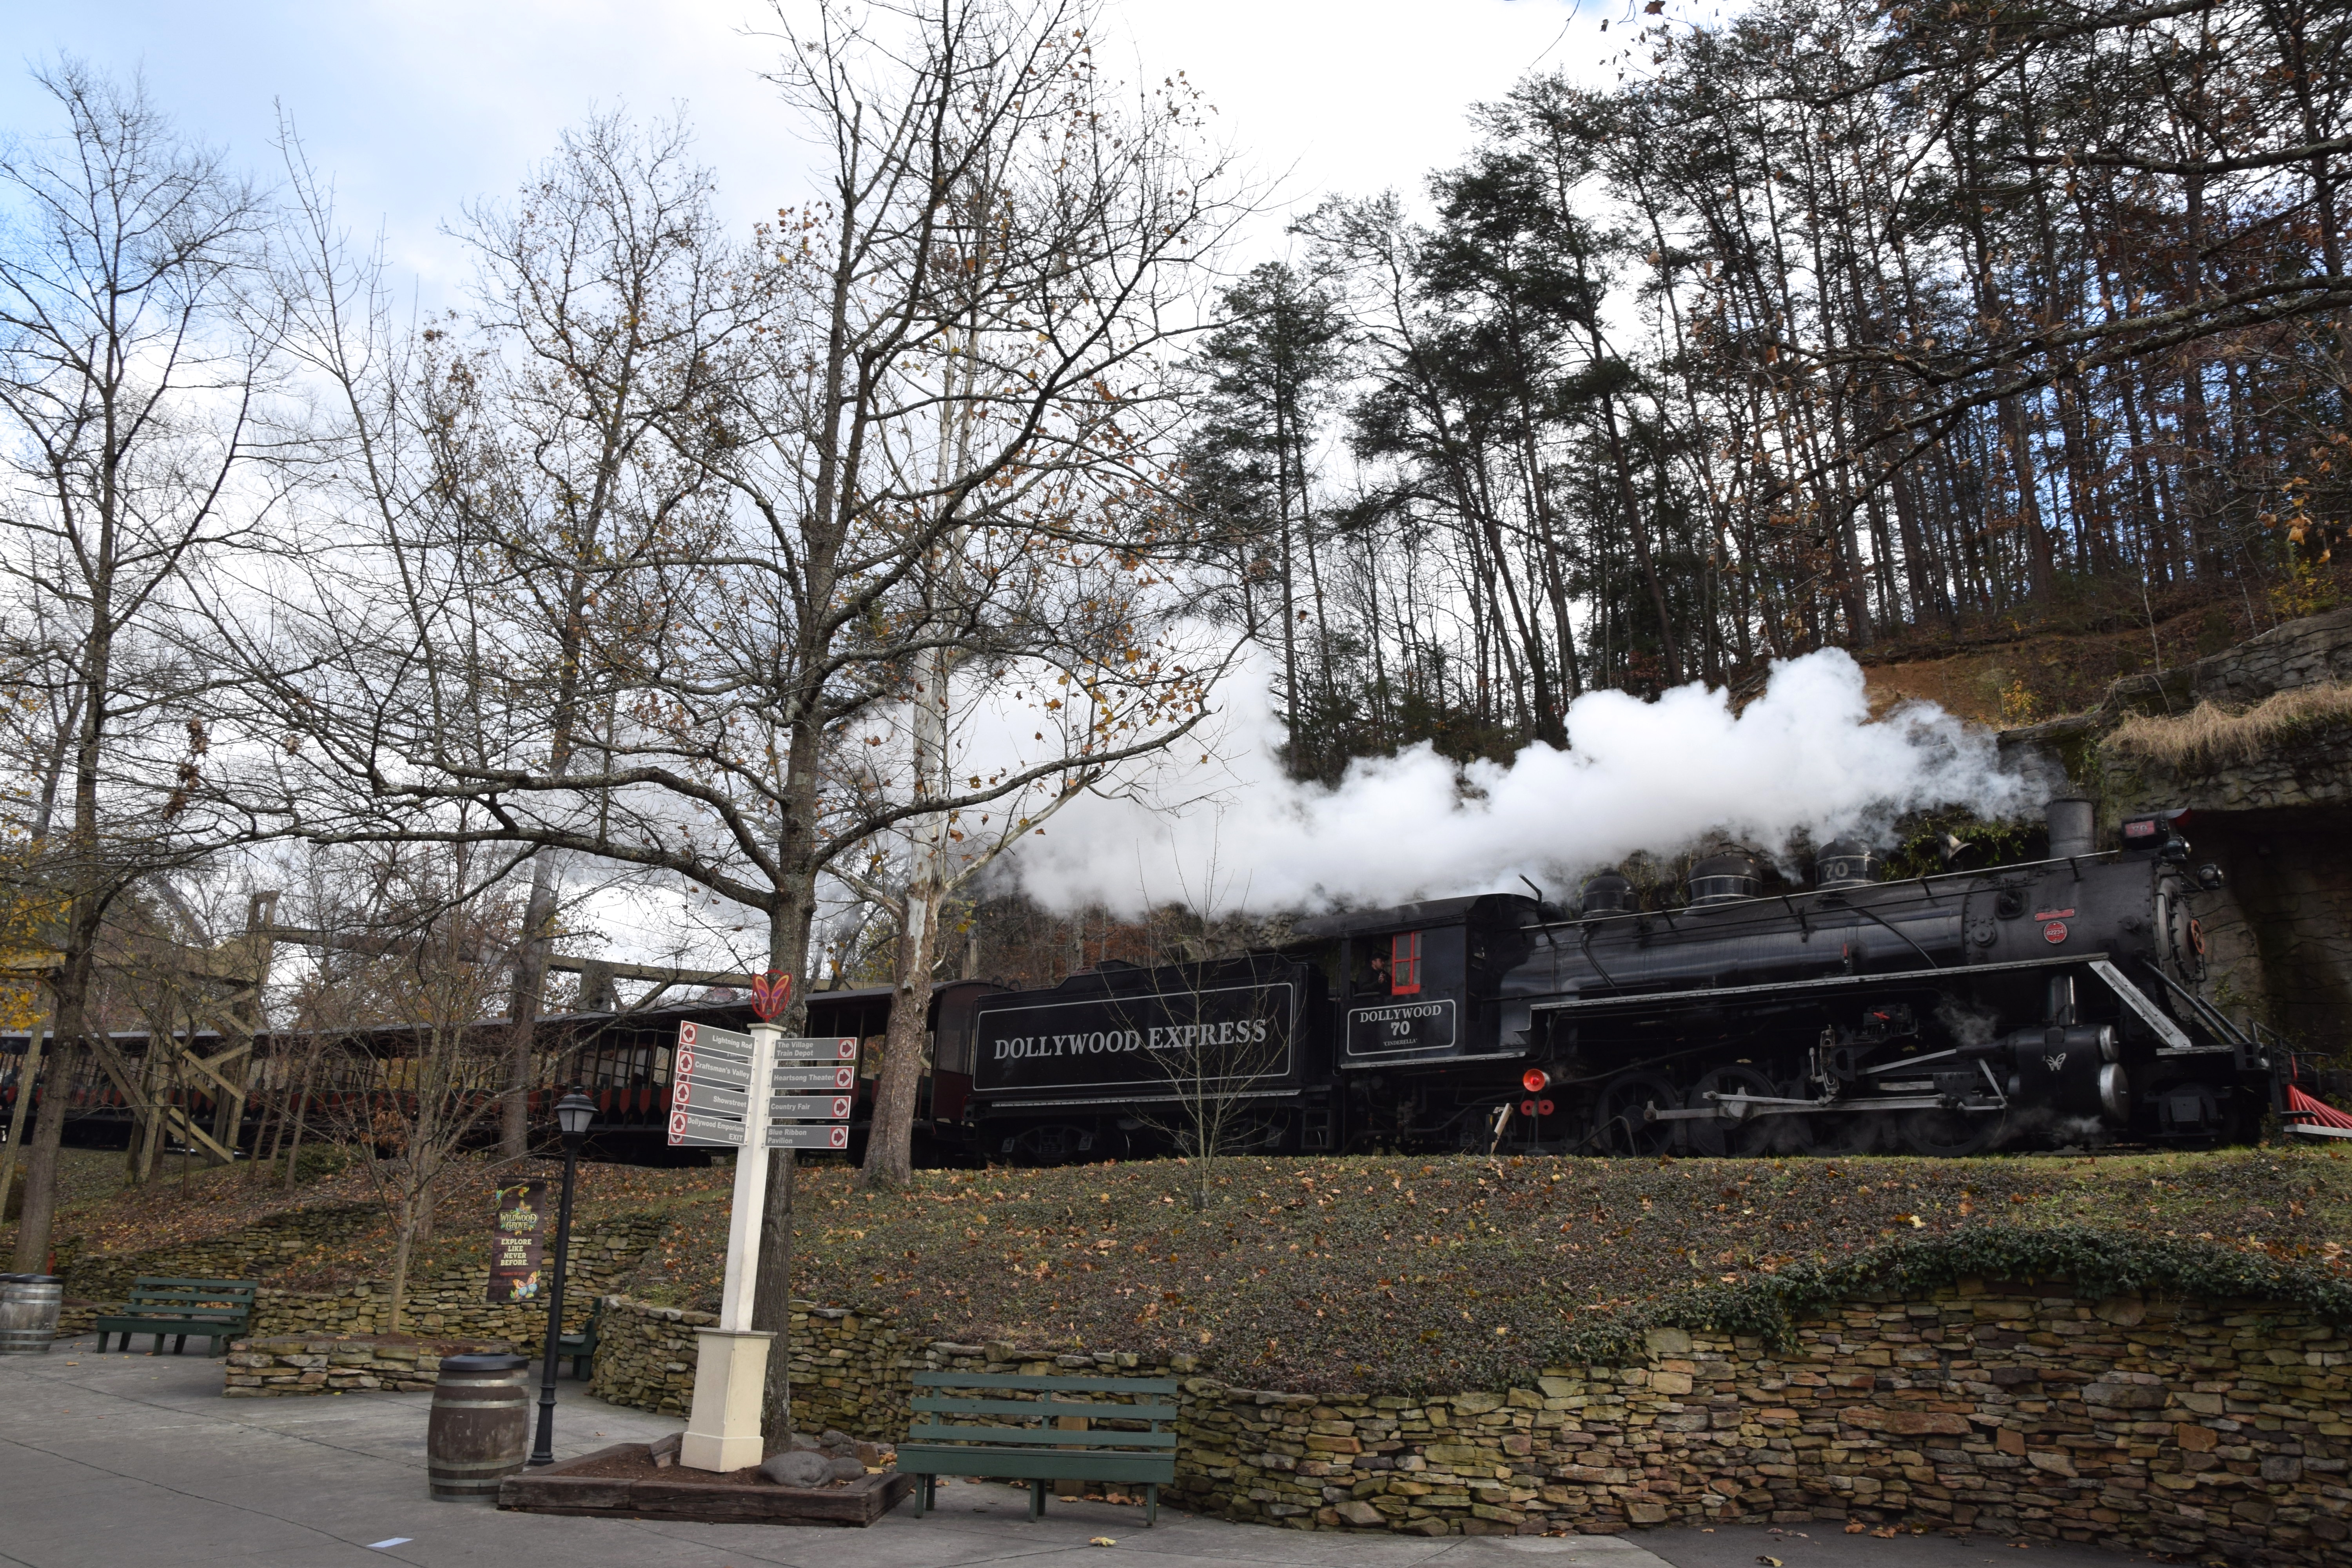 Dollywood Trip Report - November 28th 2018 - Coaster Kings